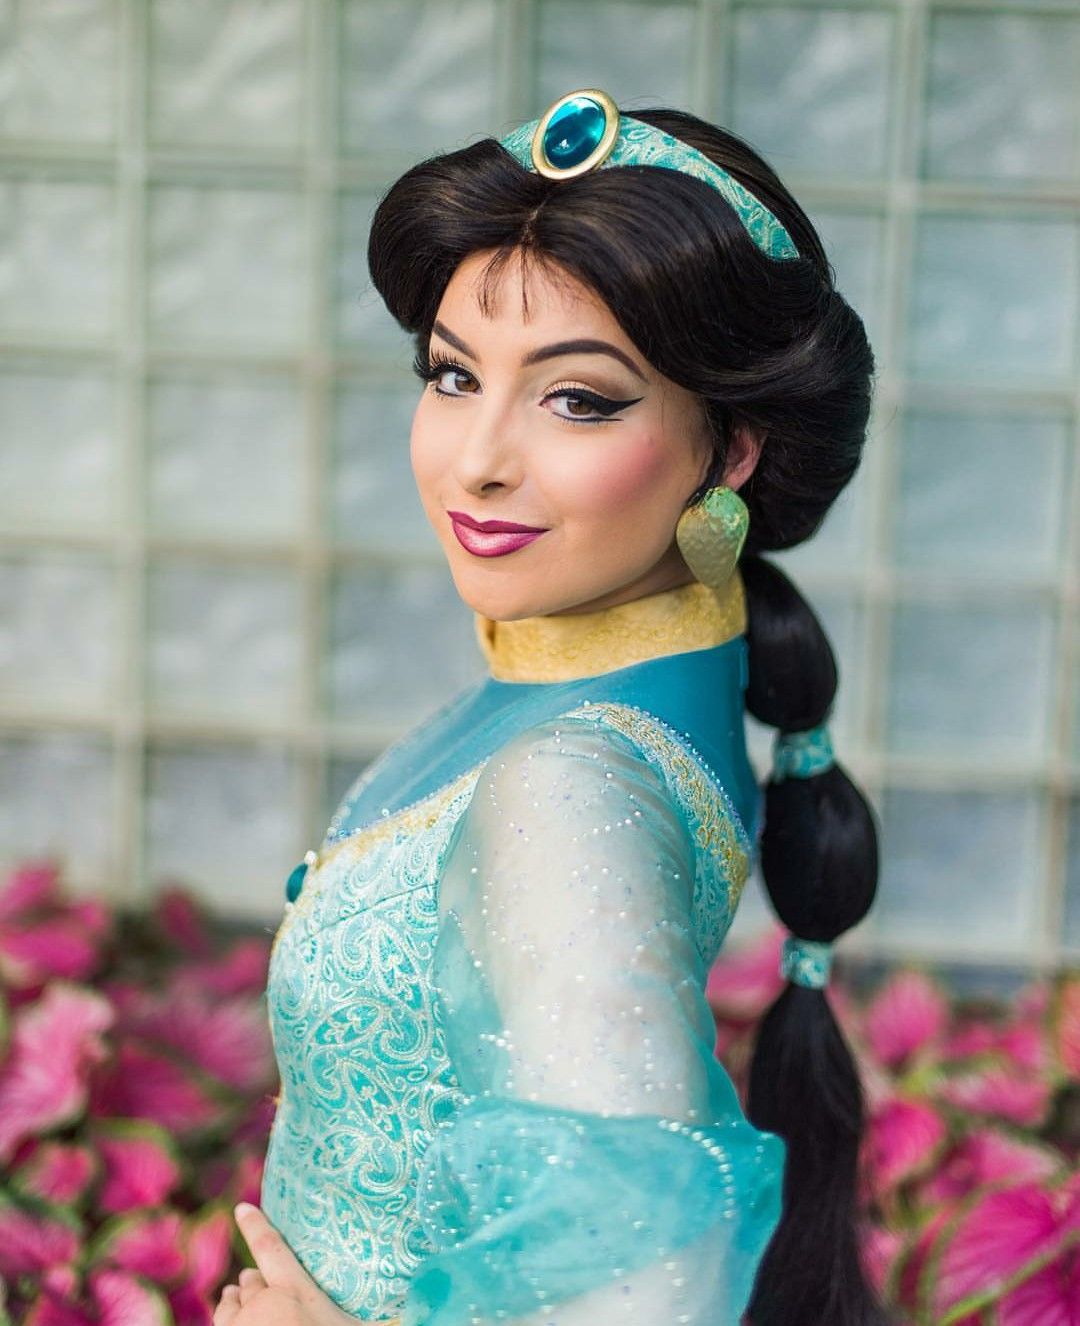 Pin By Chelsea Paradiso On Other Disney Princess Jasmine Picture